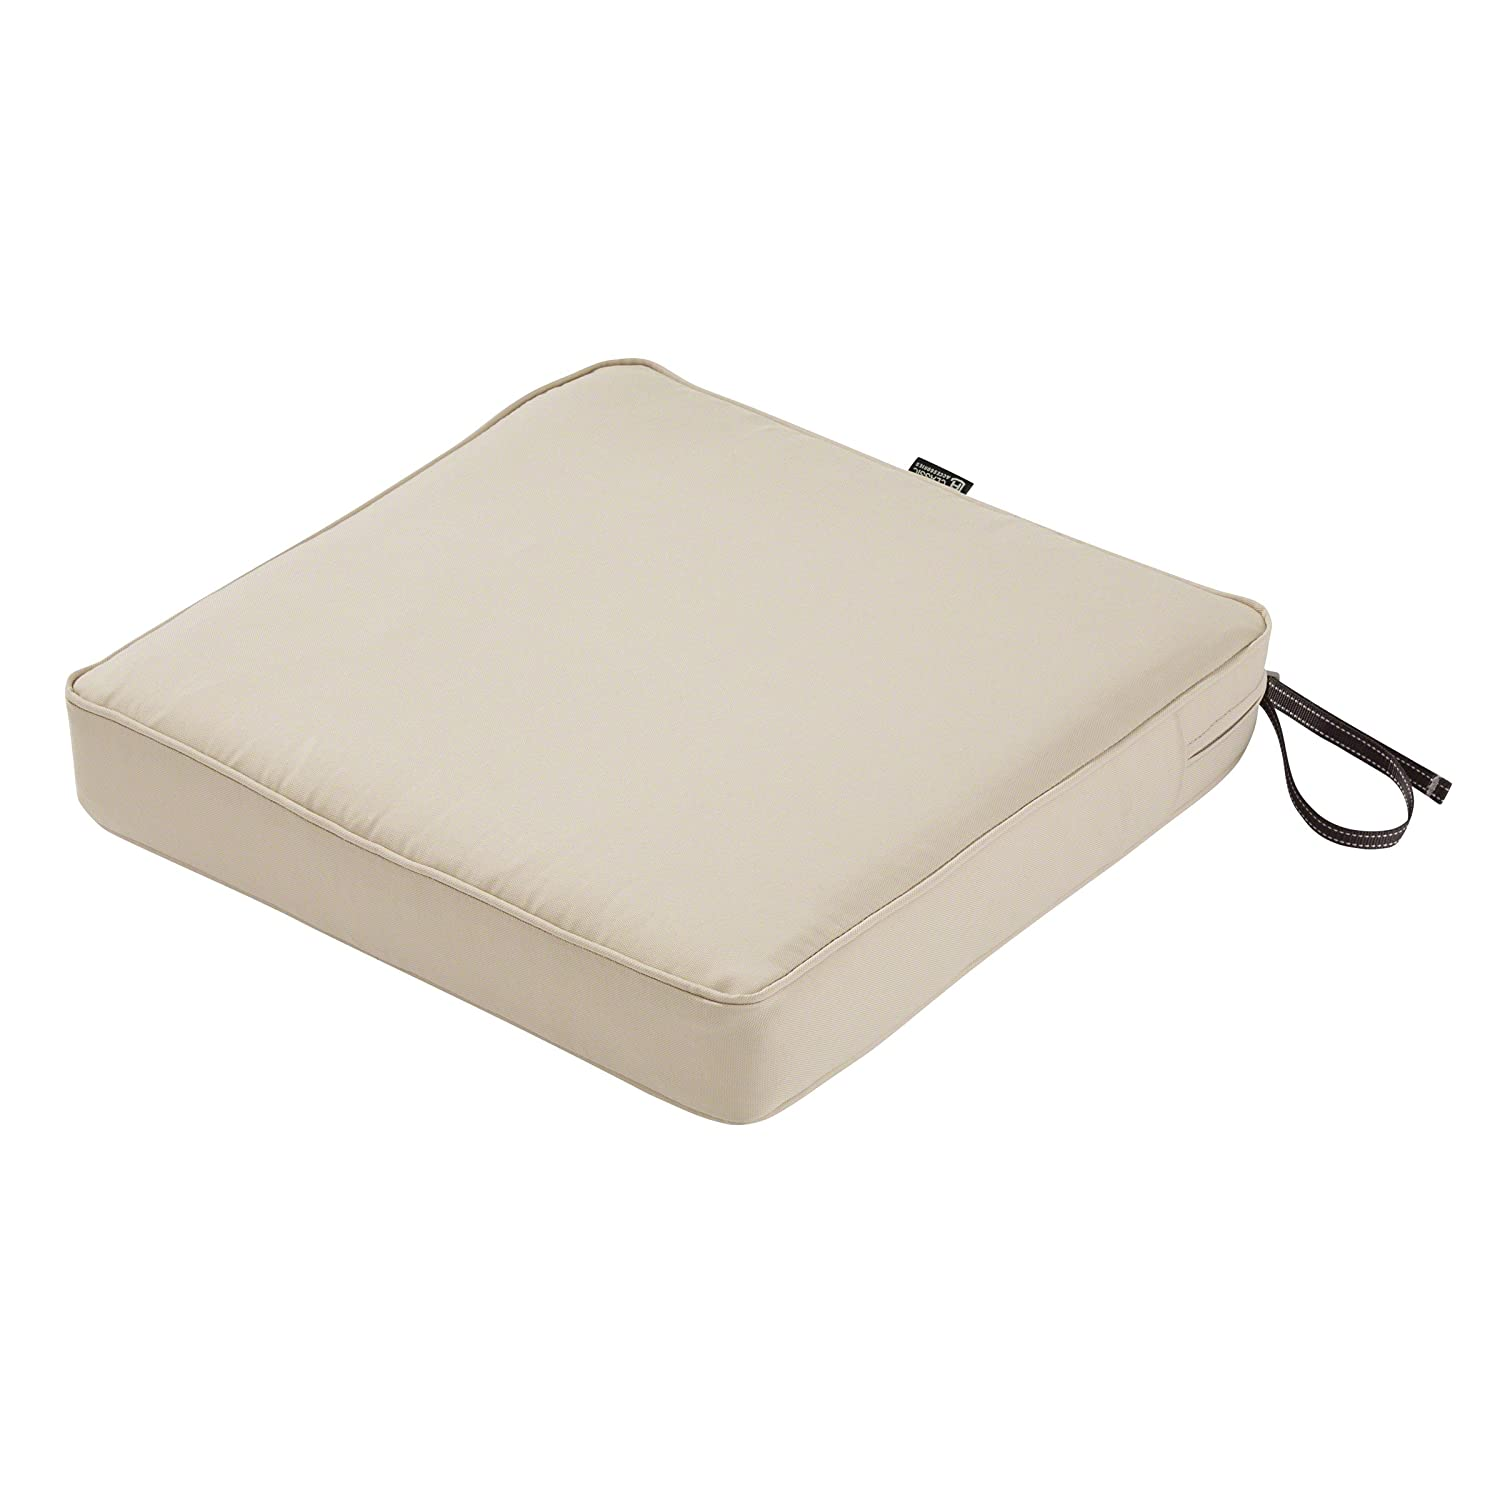 """Classic Accessories Montlake Seat Cushion Foam & Slip Cover, Antique Beige, 17x17x3"""" Thickwith Montlake Cushion"""